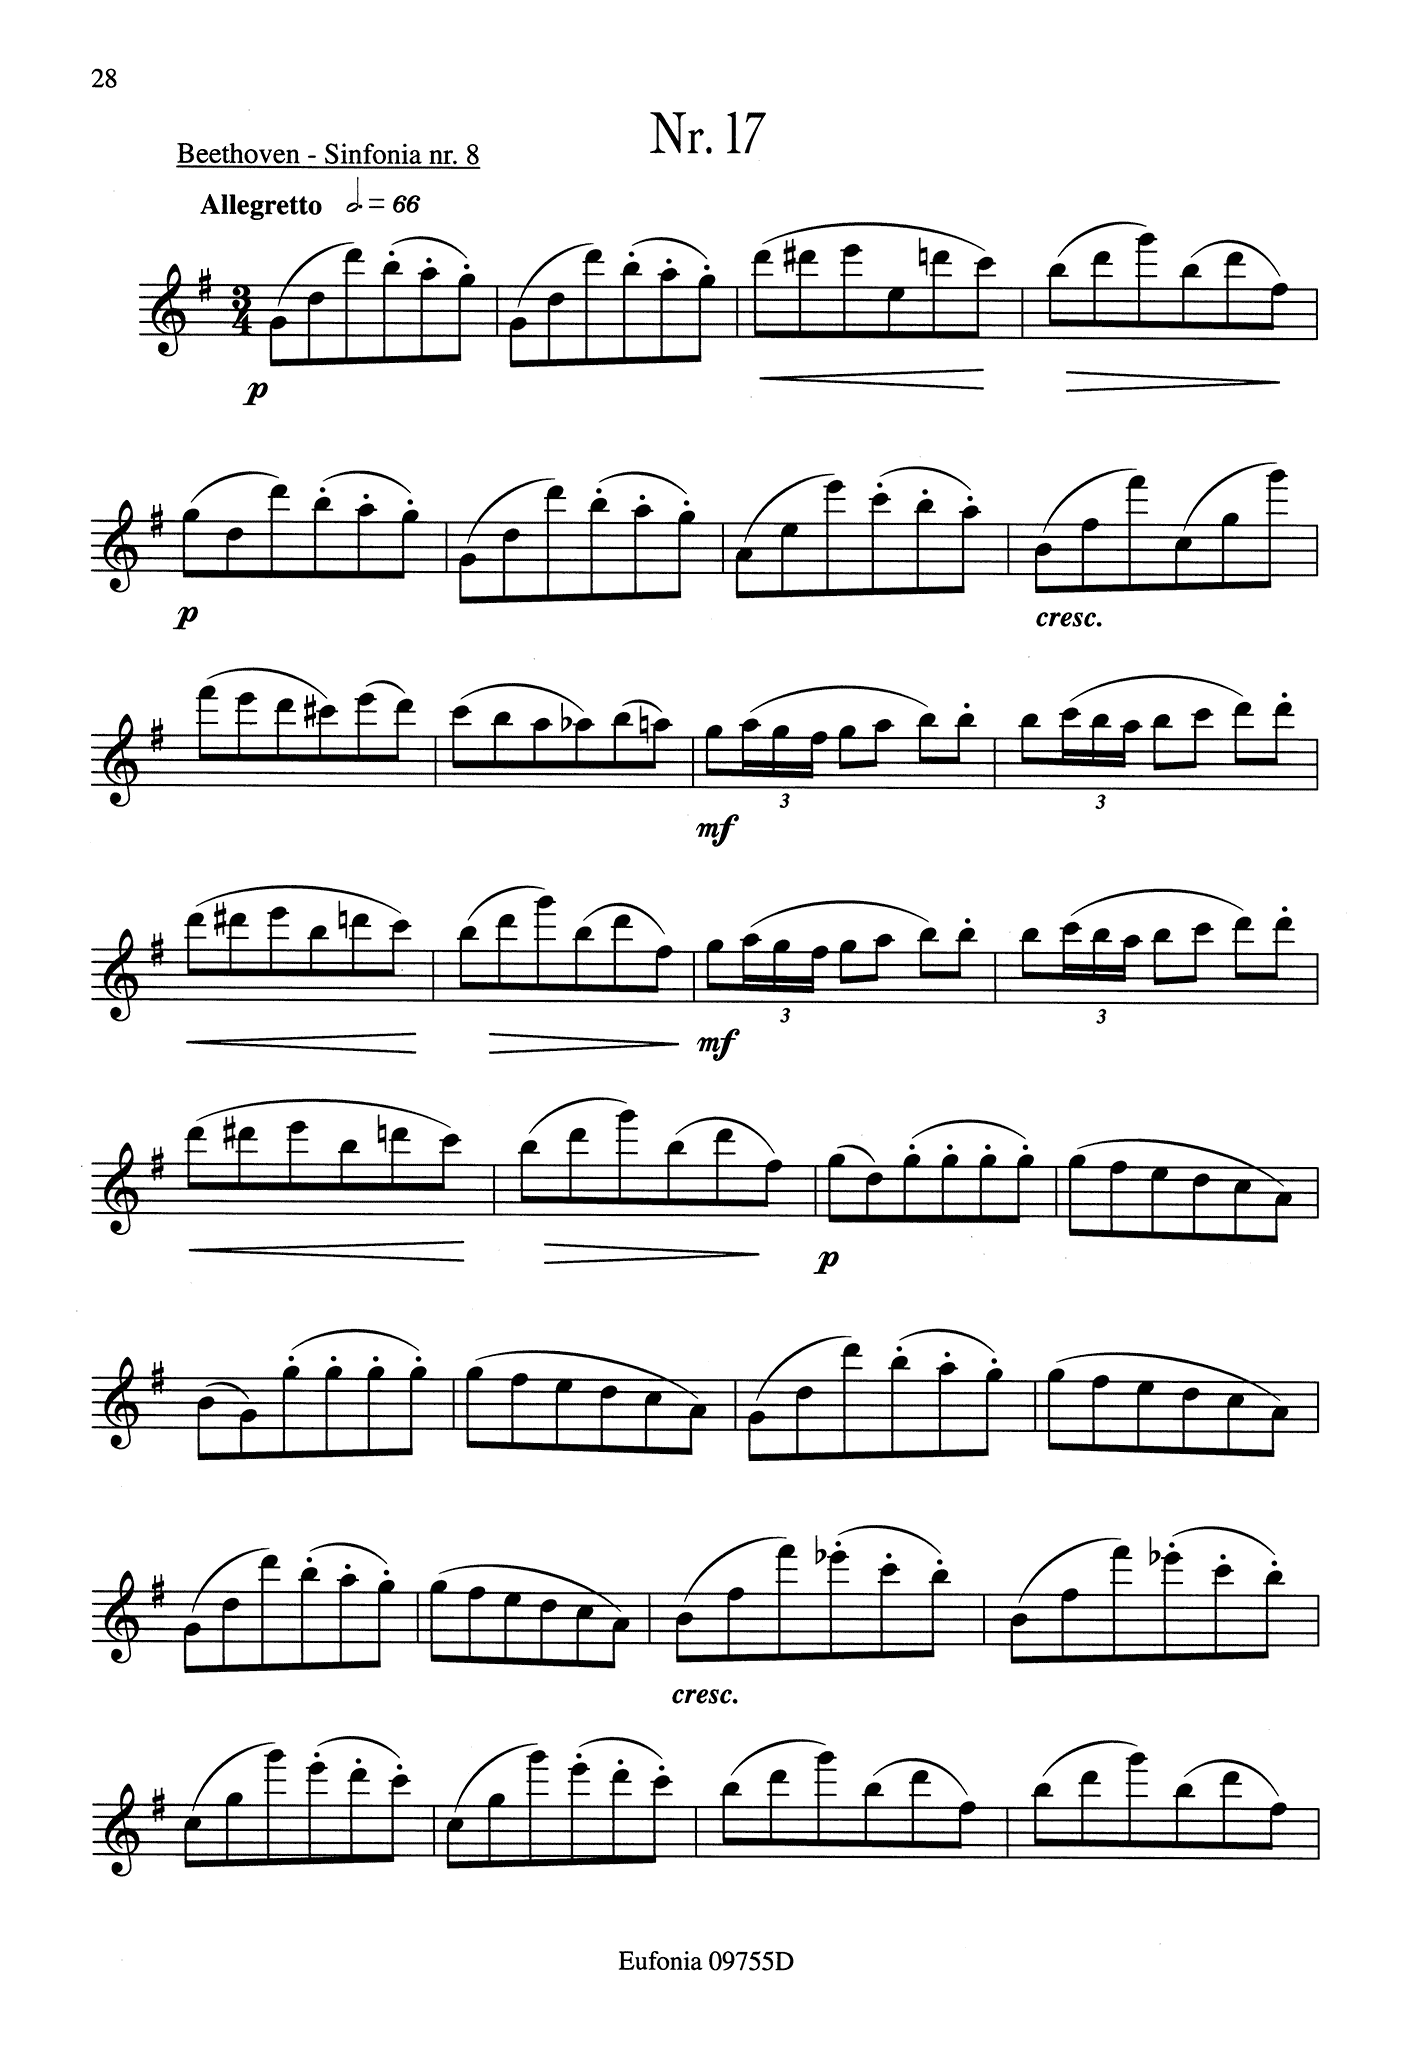 23 Studies for Clarinet Page 28